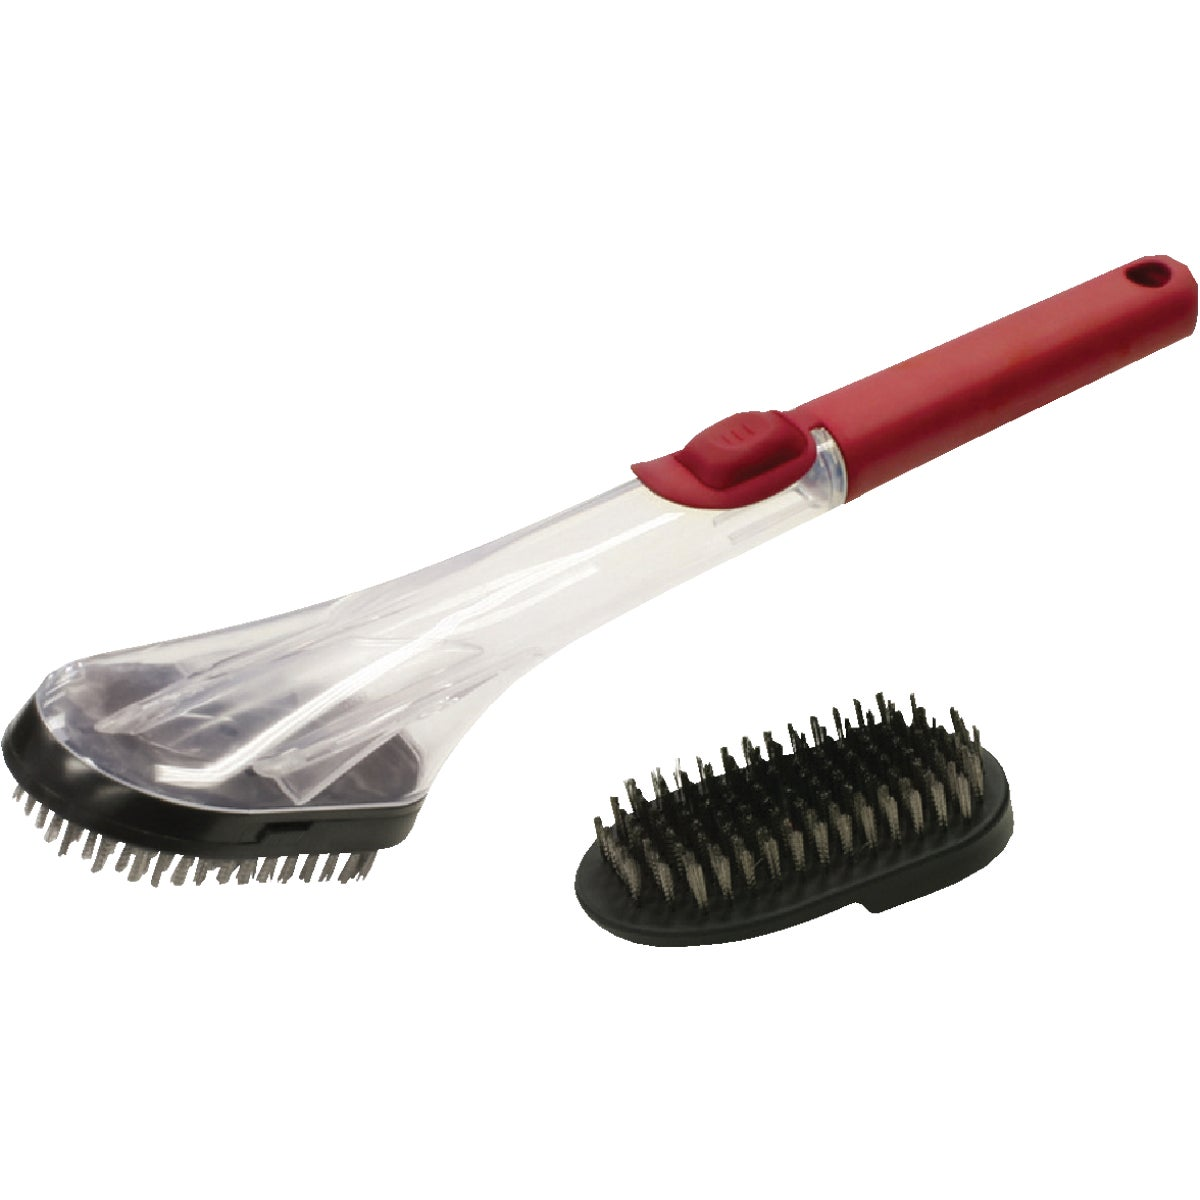 STEAMER BRUSH - 77675 by Onward Multi Corp Y1